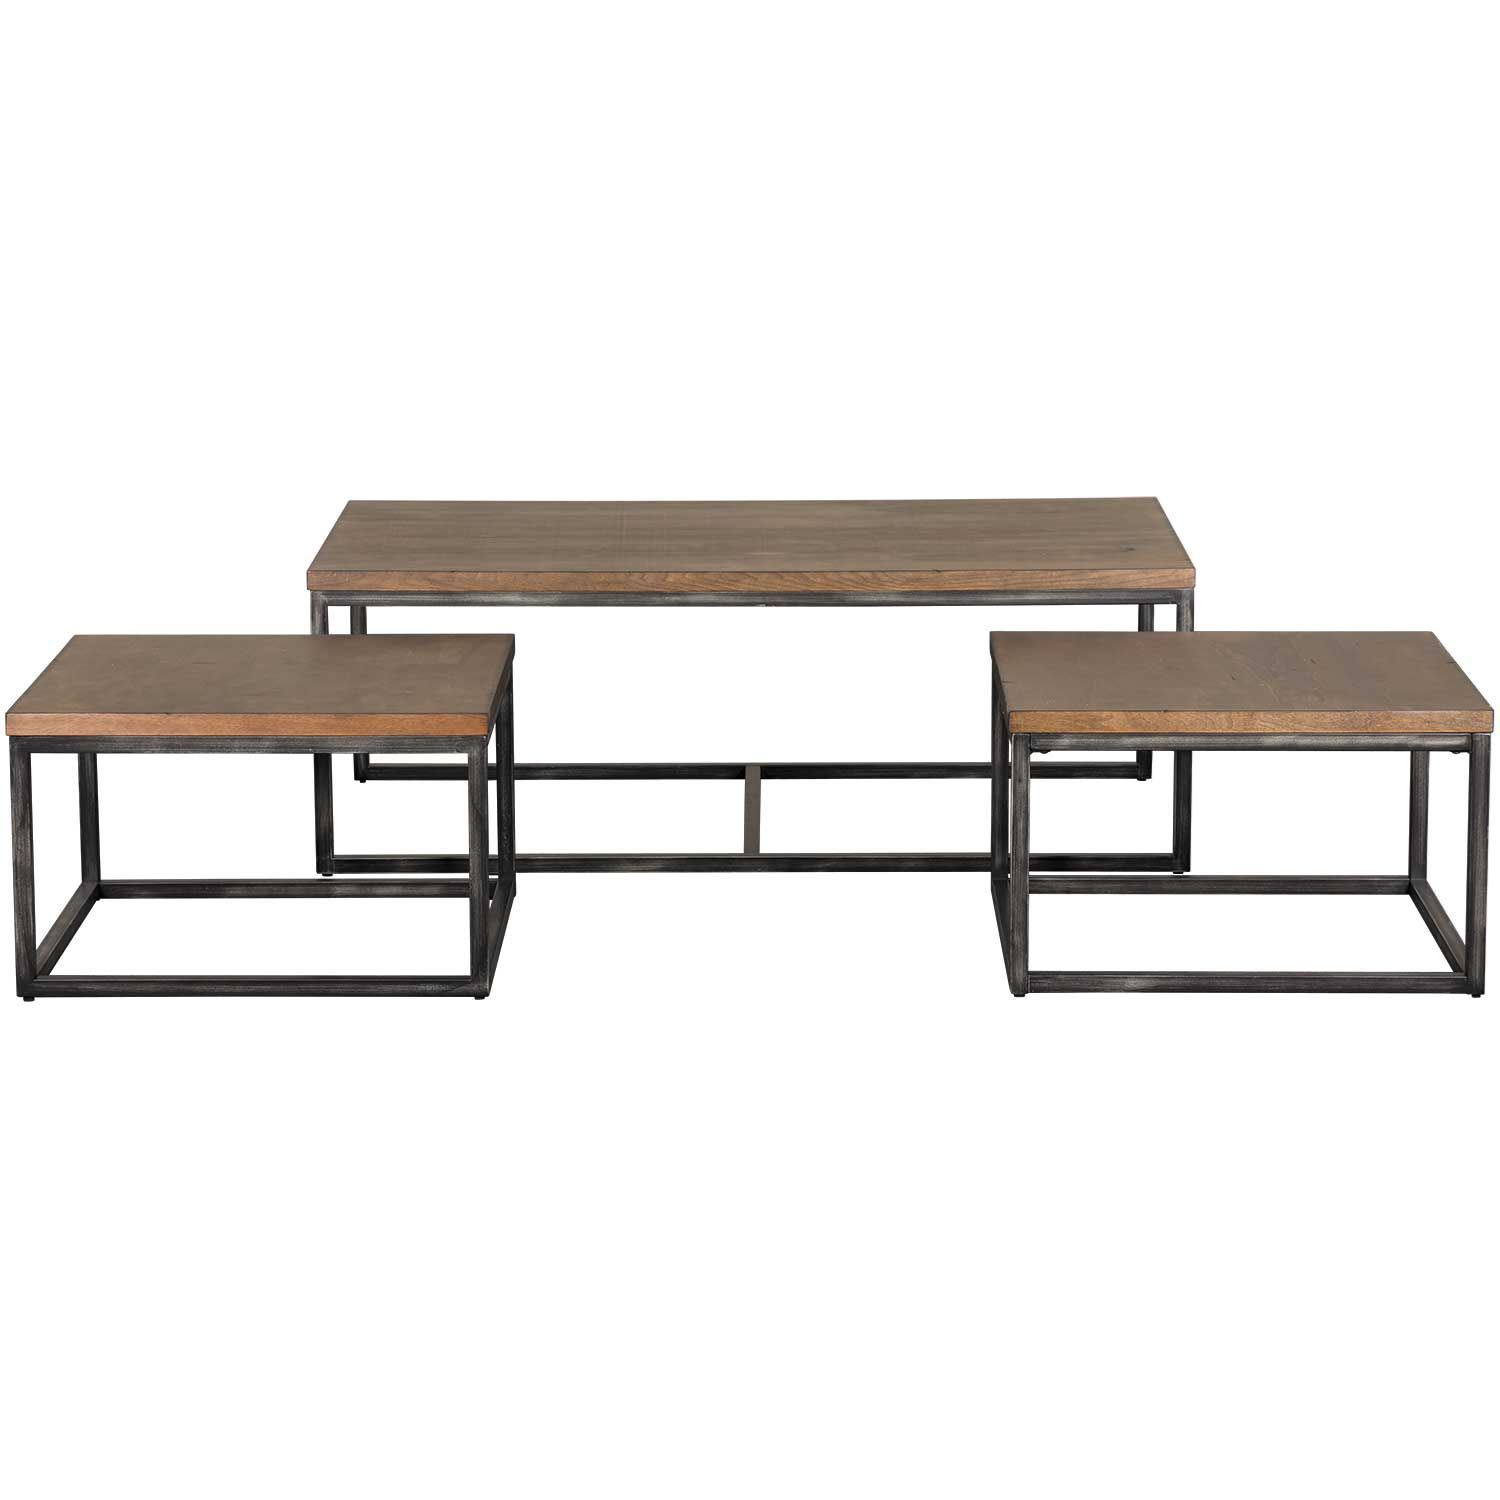 Chandler Cocktail Table With Nesting Tables pertaining to measurements 1500 X 1500